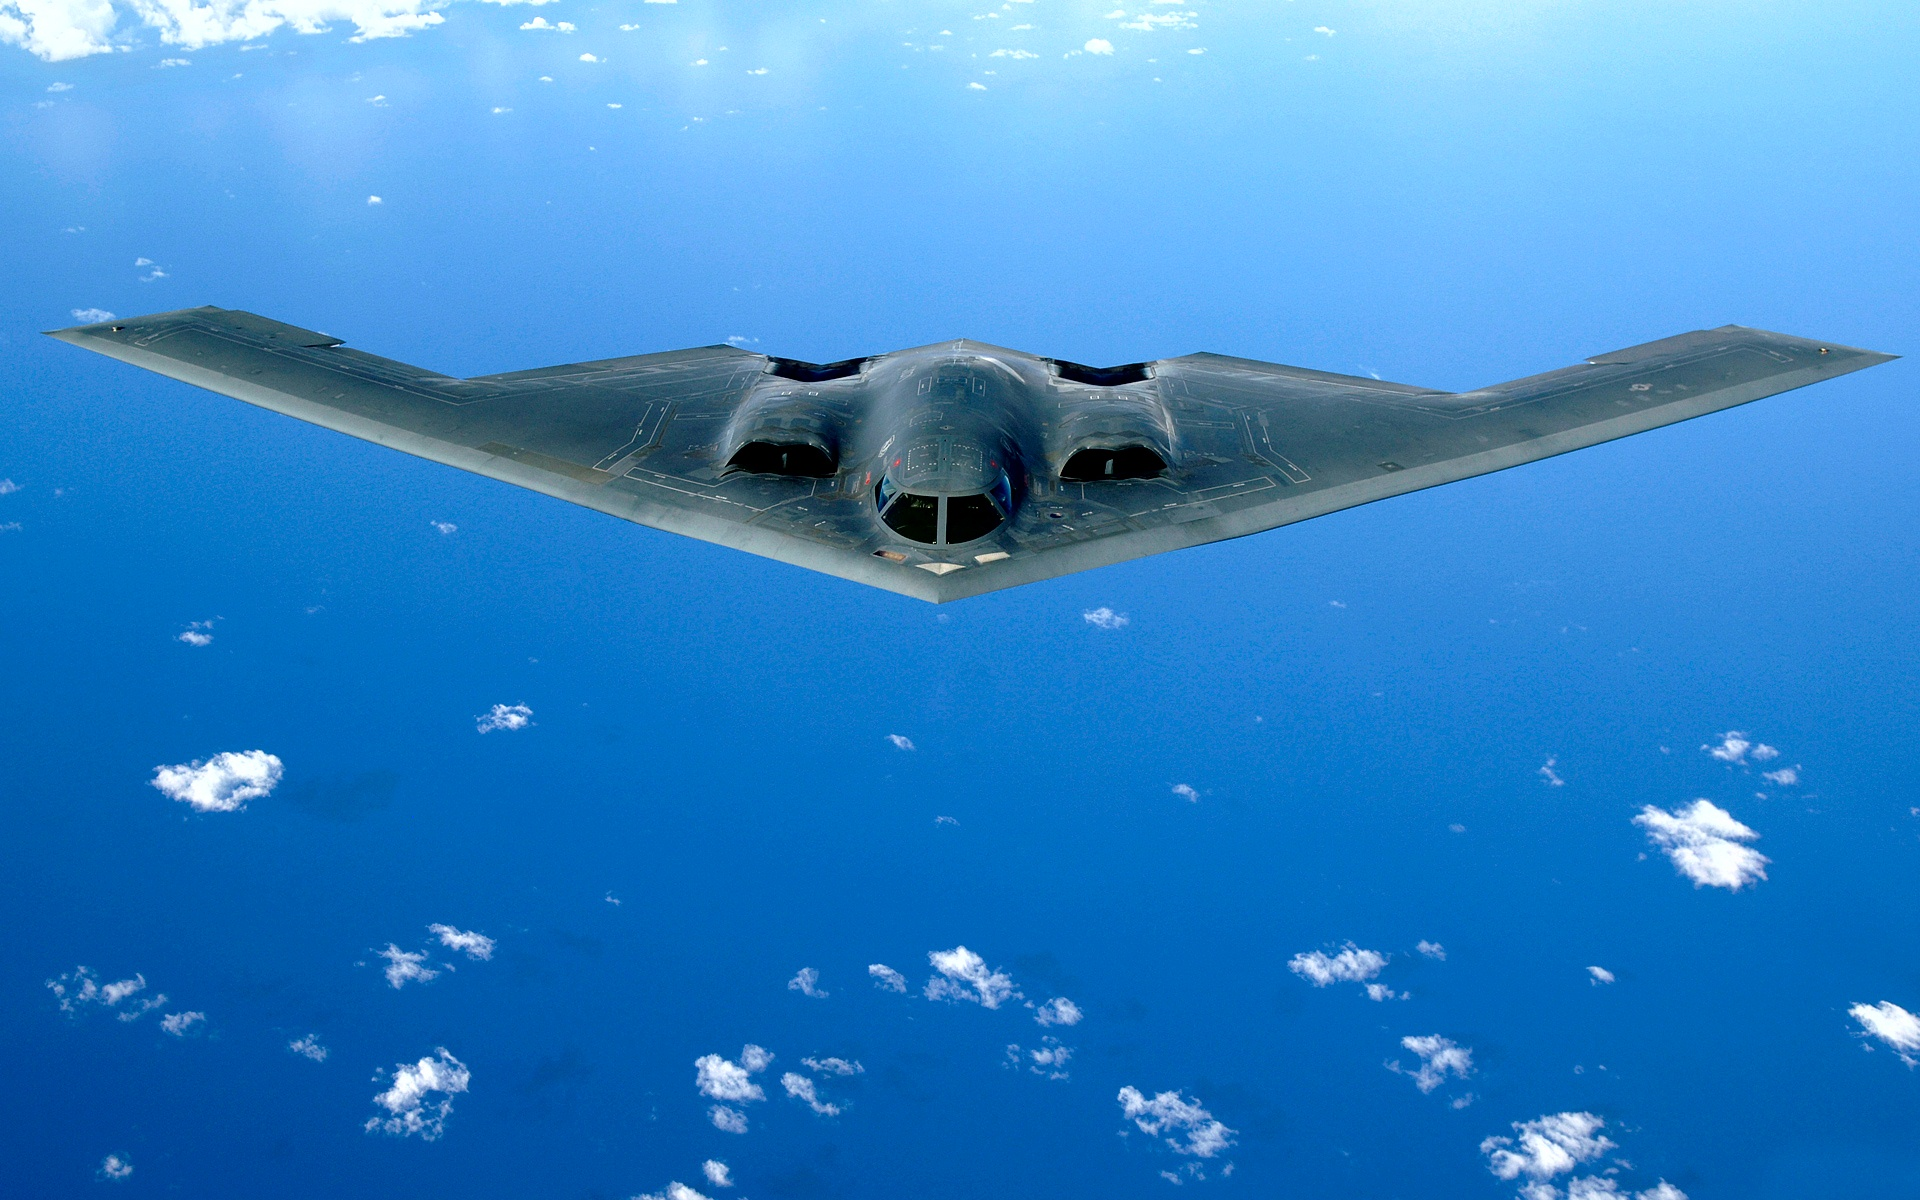 Spirit Stealth Bomber Wallpapers HD Wallpapers 1920x1200